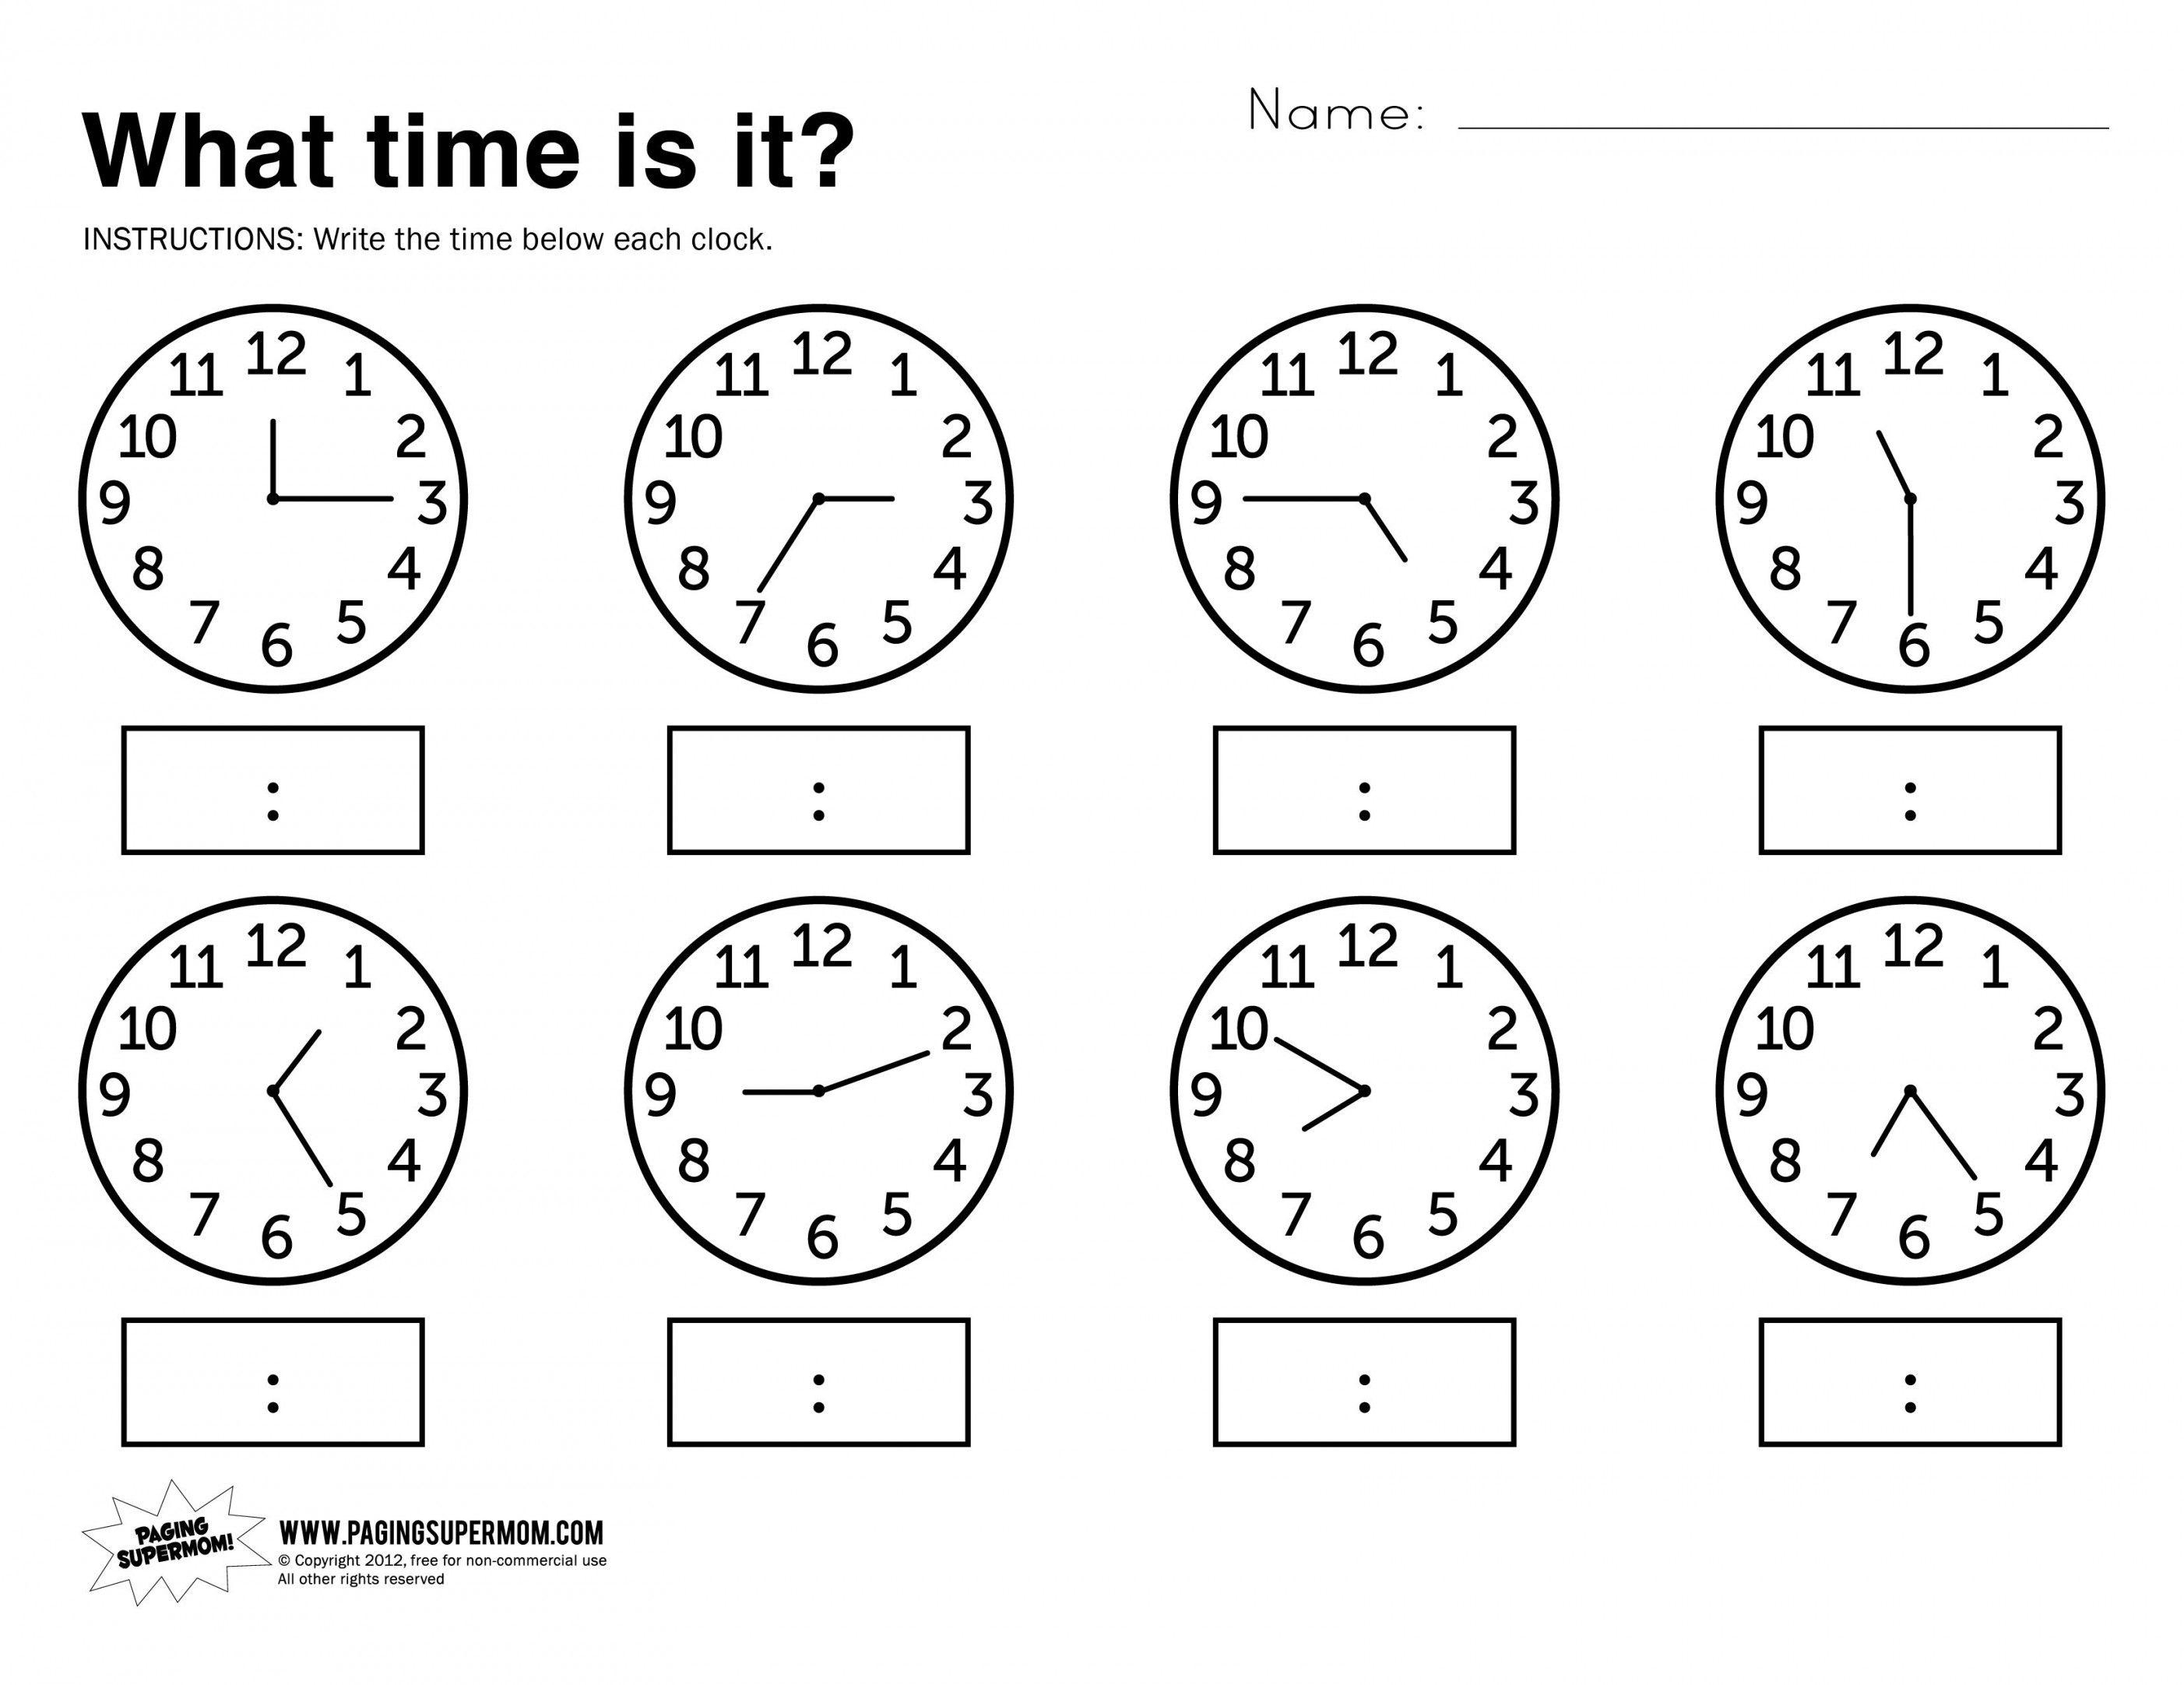 Telling Time Worksheets Grade 3 | Lostranquillos - Free Printable | Elapsed Time Worksheets Free Printable